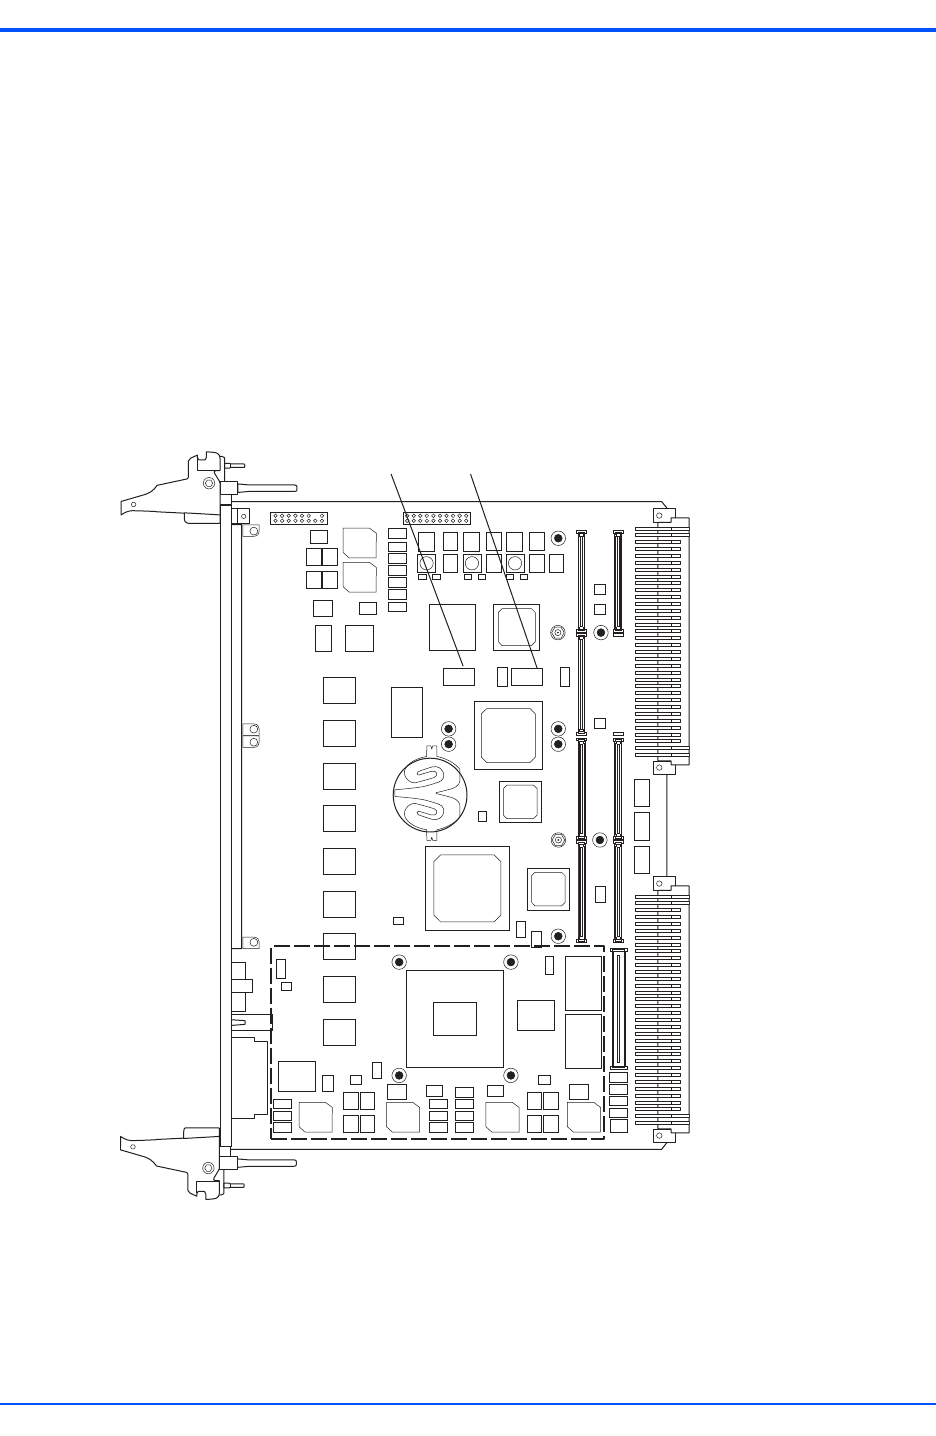 Emerson Mvme7100 Users Manual Bmw 20 Pin Connector Pinout On Ide To Usb Cable Wiring Diagram Single Board Computer Installation And Use 6806800e08a